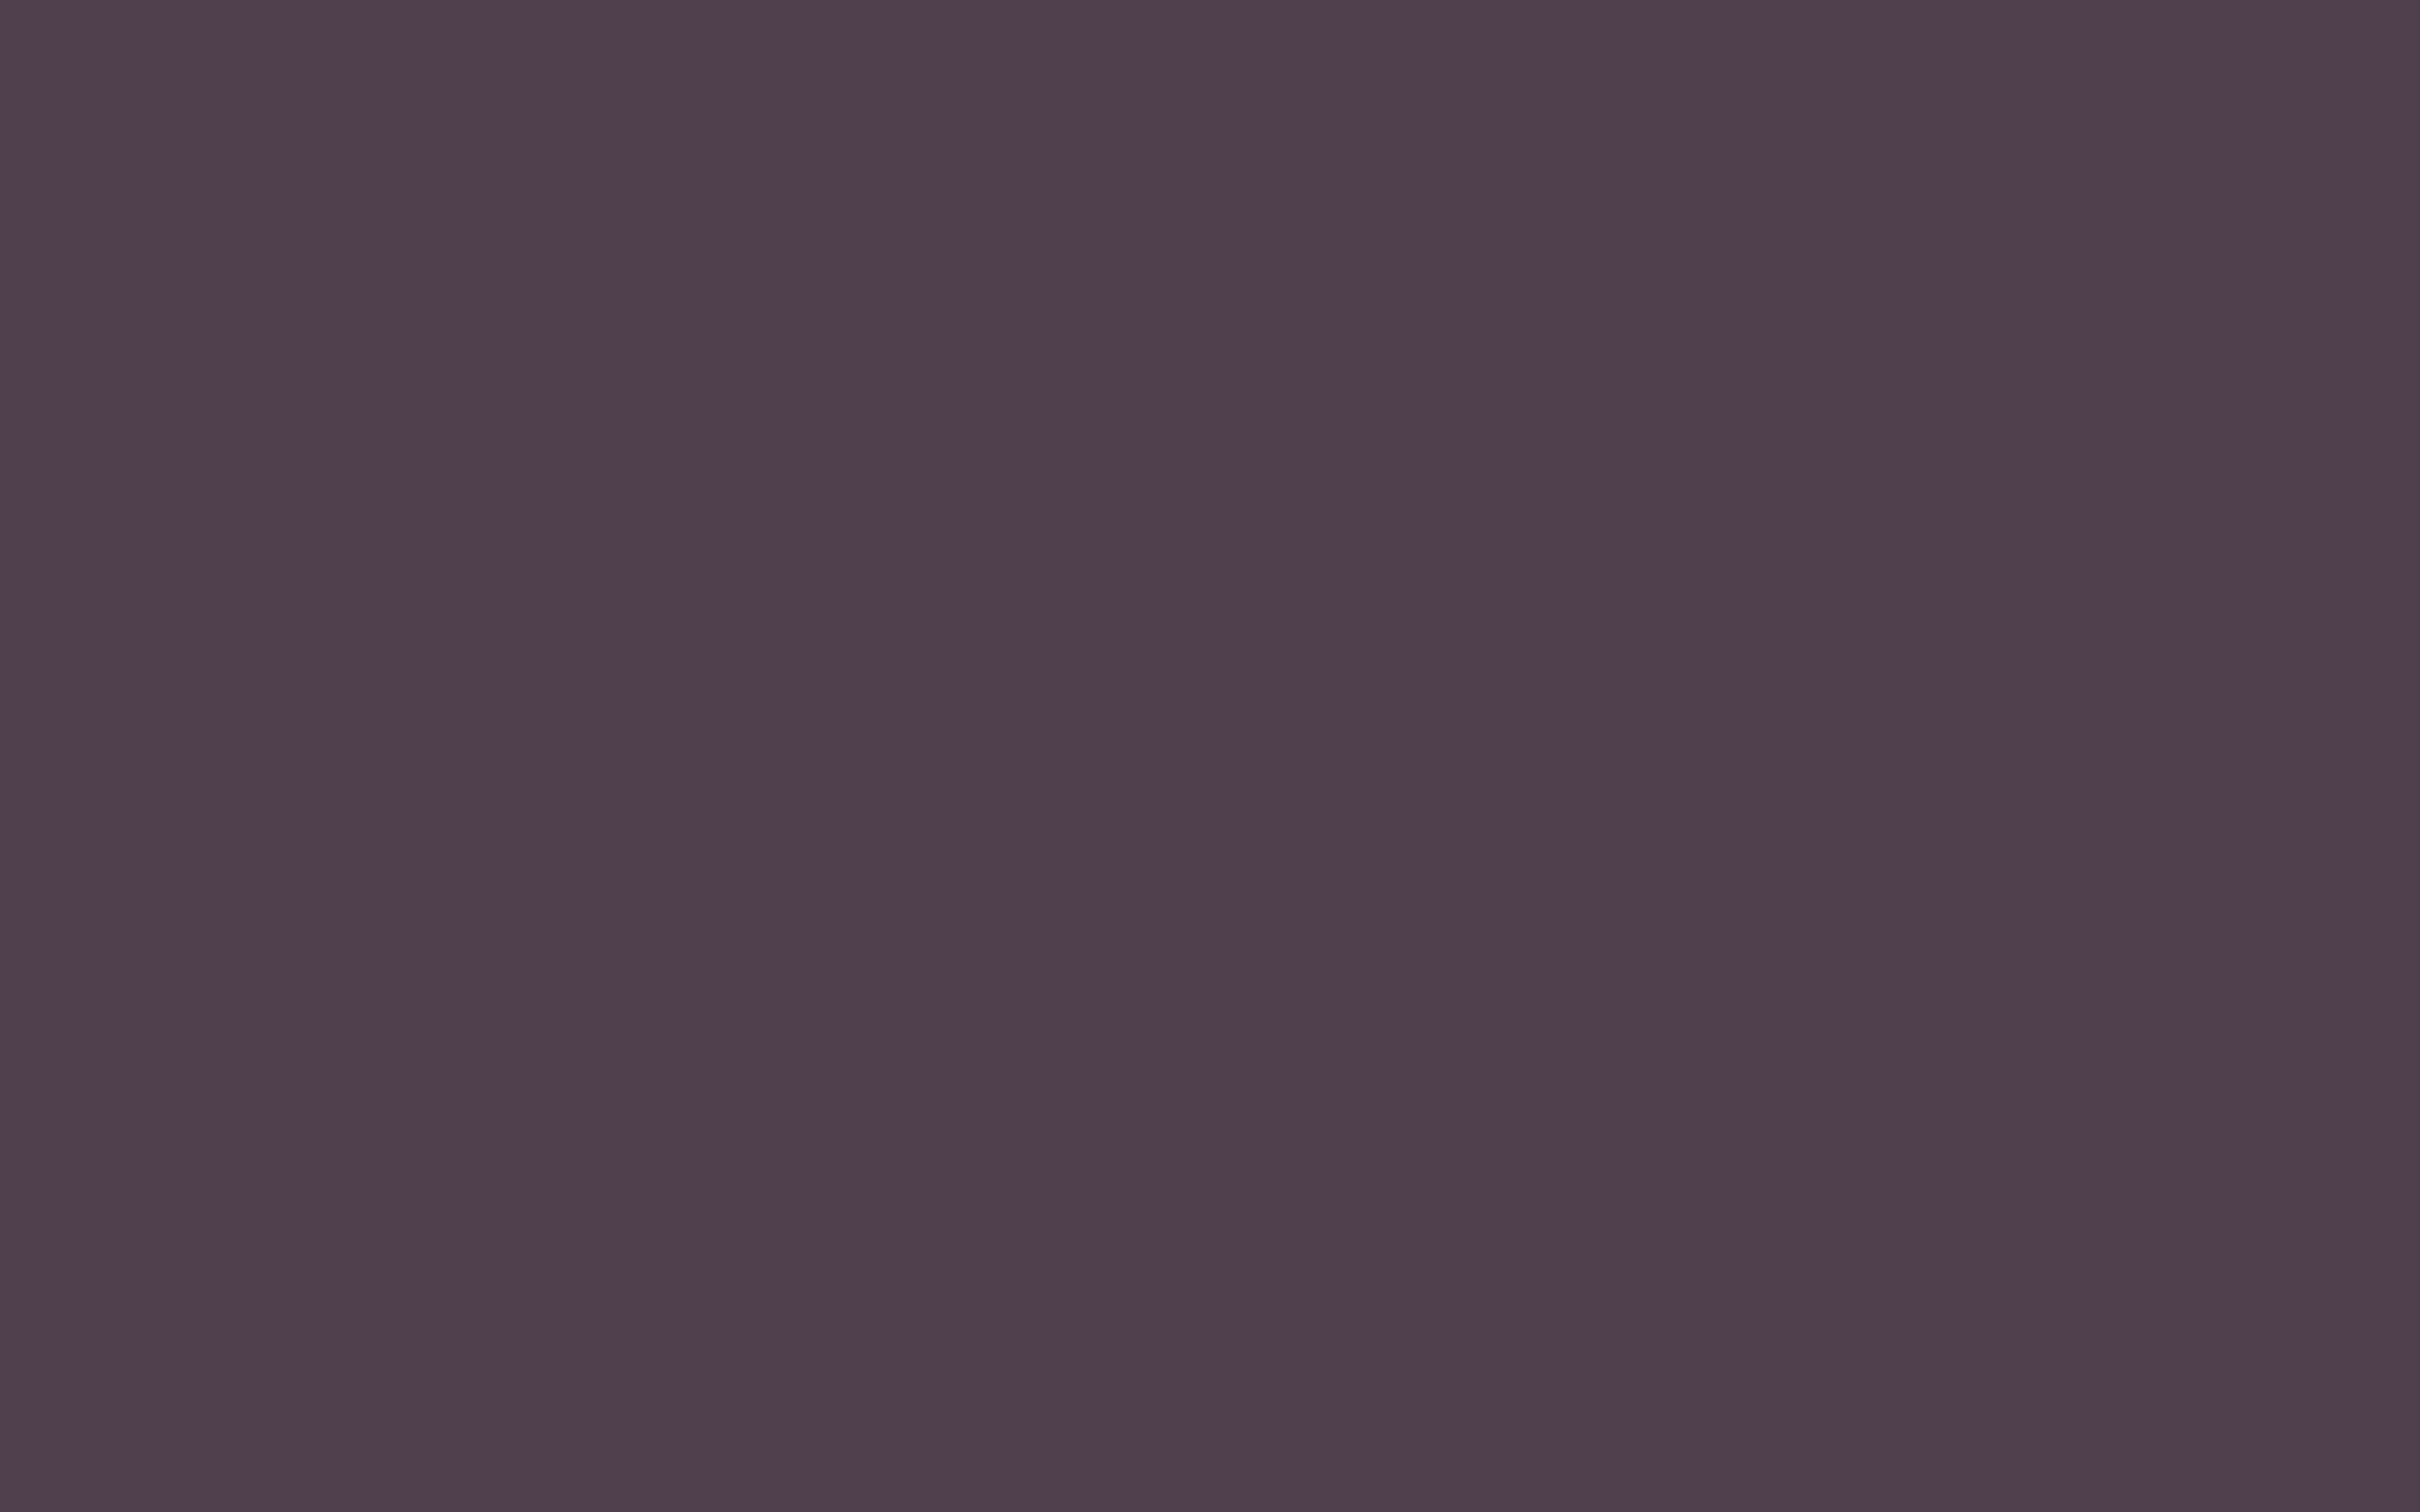 2560x1600 Purple Taupe Solid Color Background